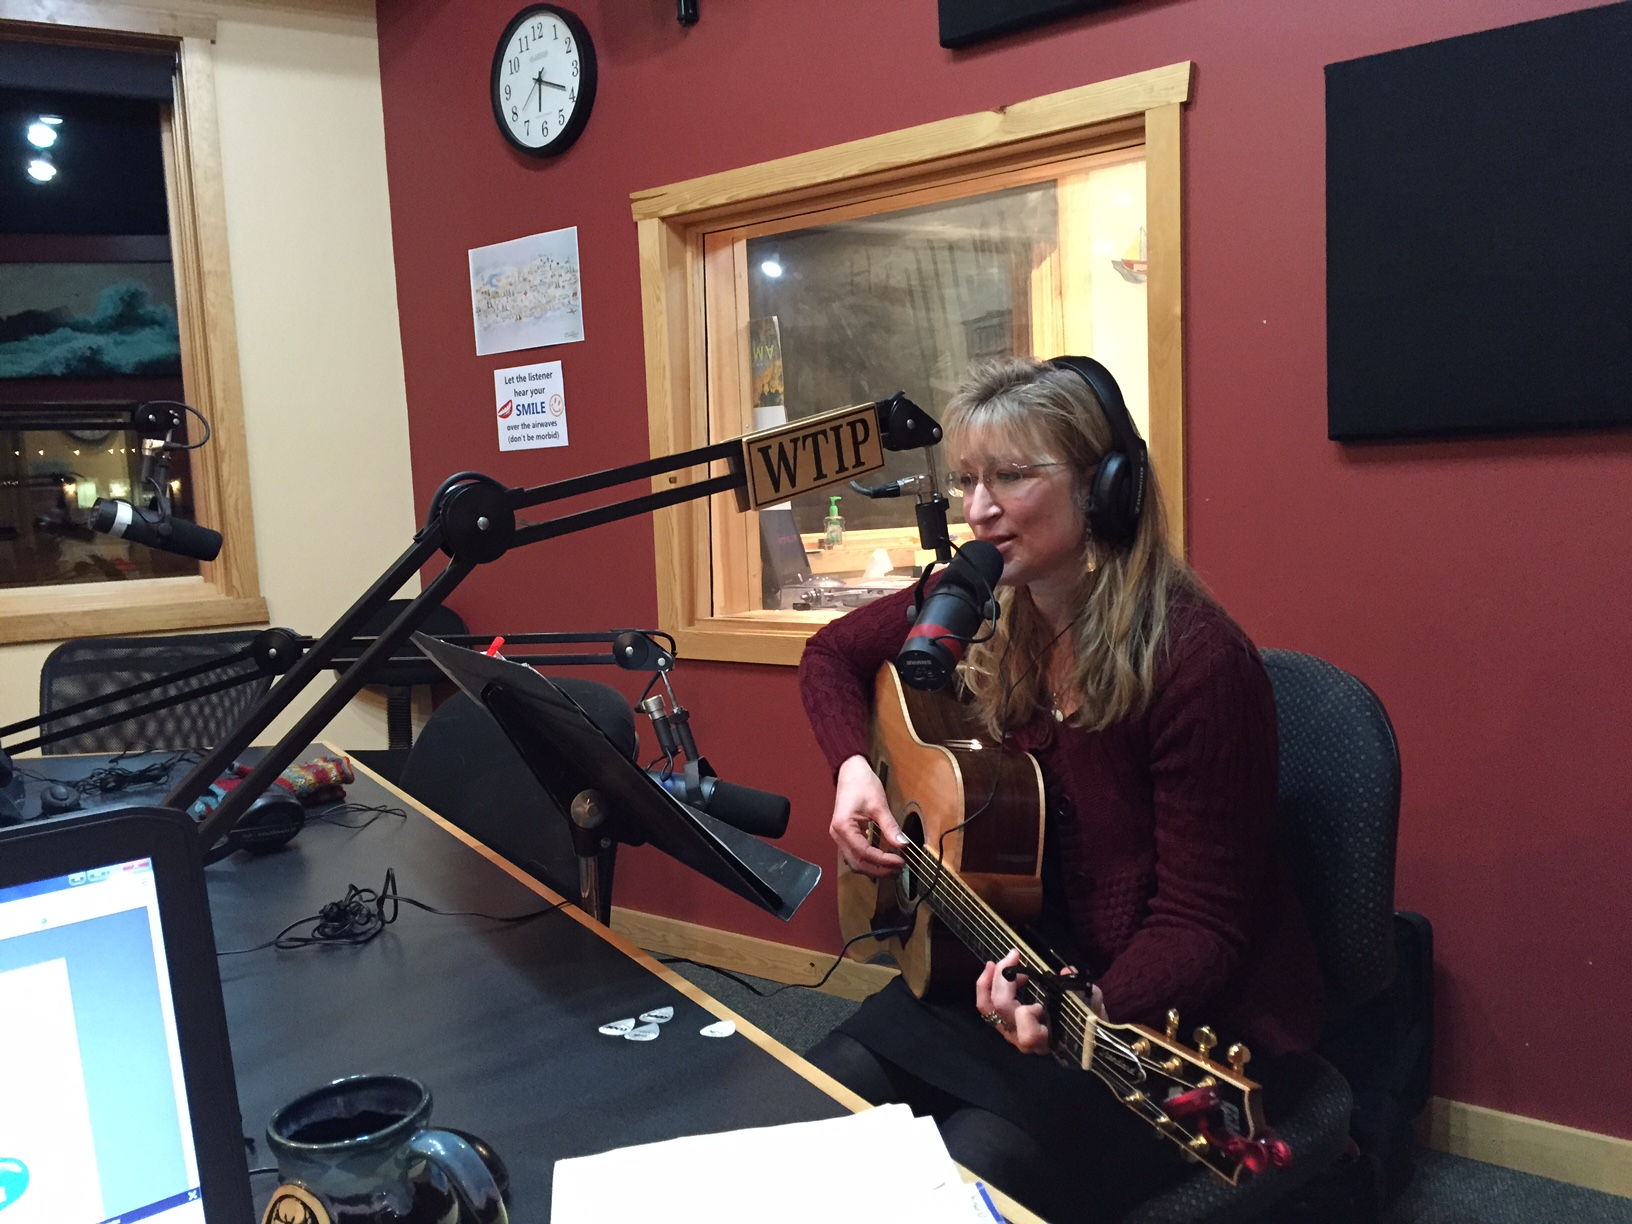 Musician Michele Miller flies solo on The Roadhouse